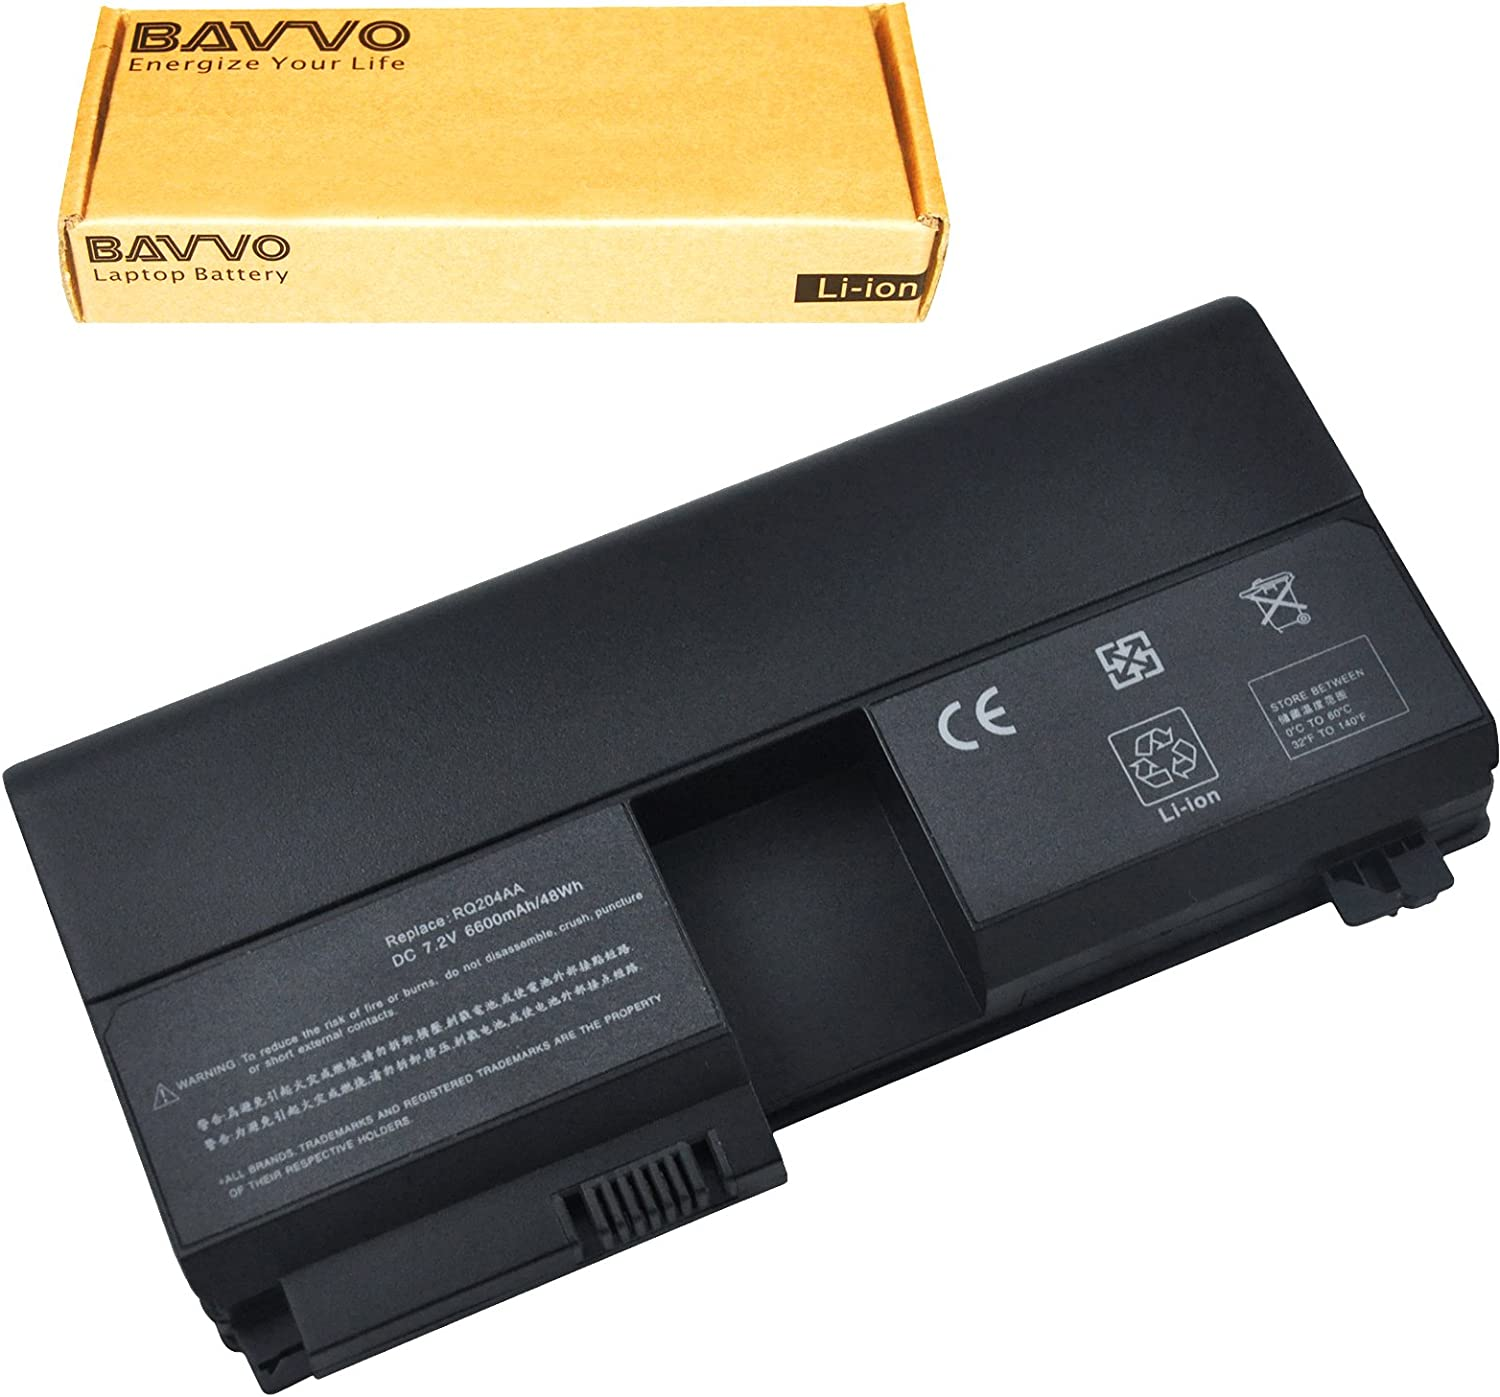 Bavvo 6-Cell Battery Compatible with Pavilion tx2000ed tx2510 tx1000 tx1100 tx1200 tx1300 tx1400 tx2000 tx2100 tx2500 tx2600